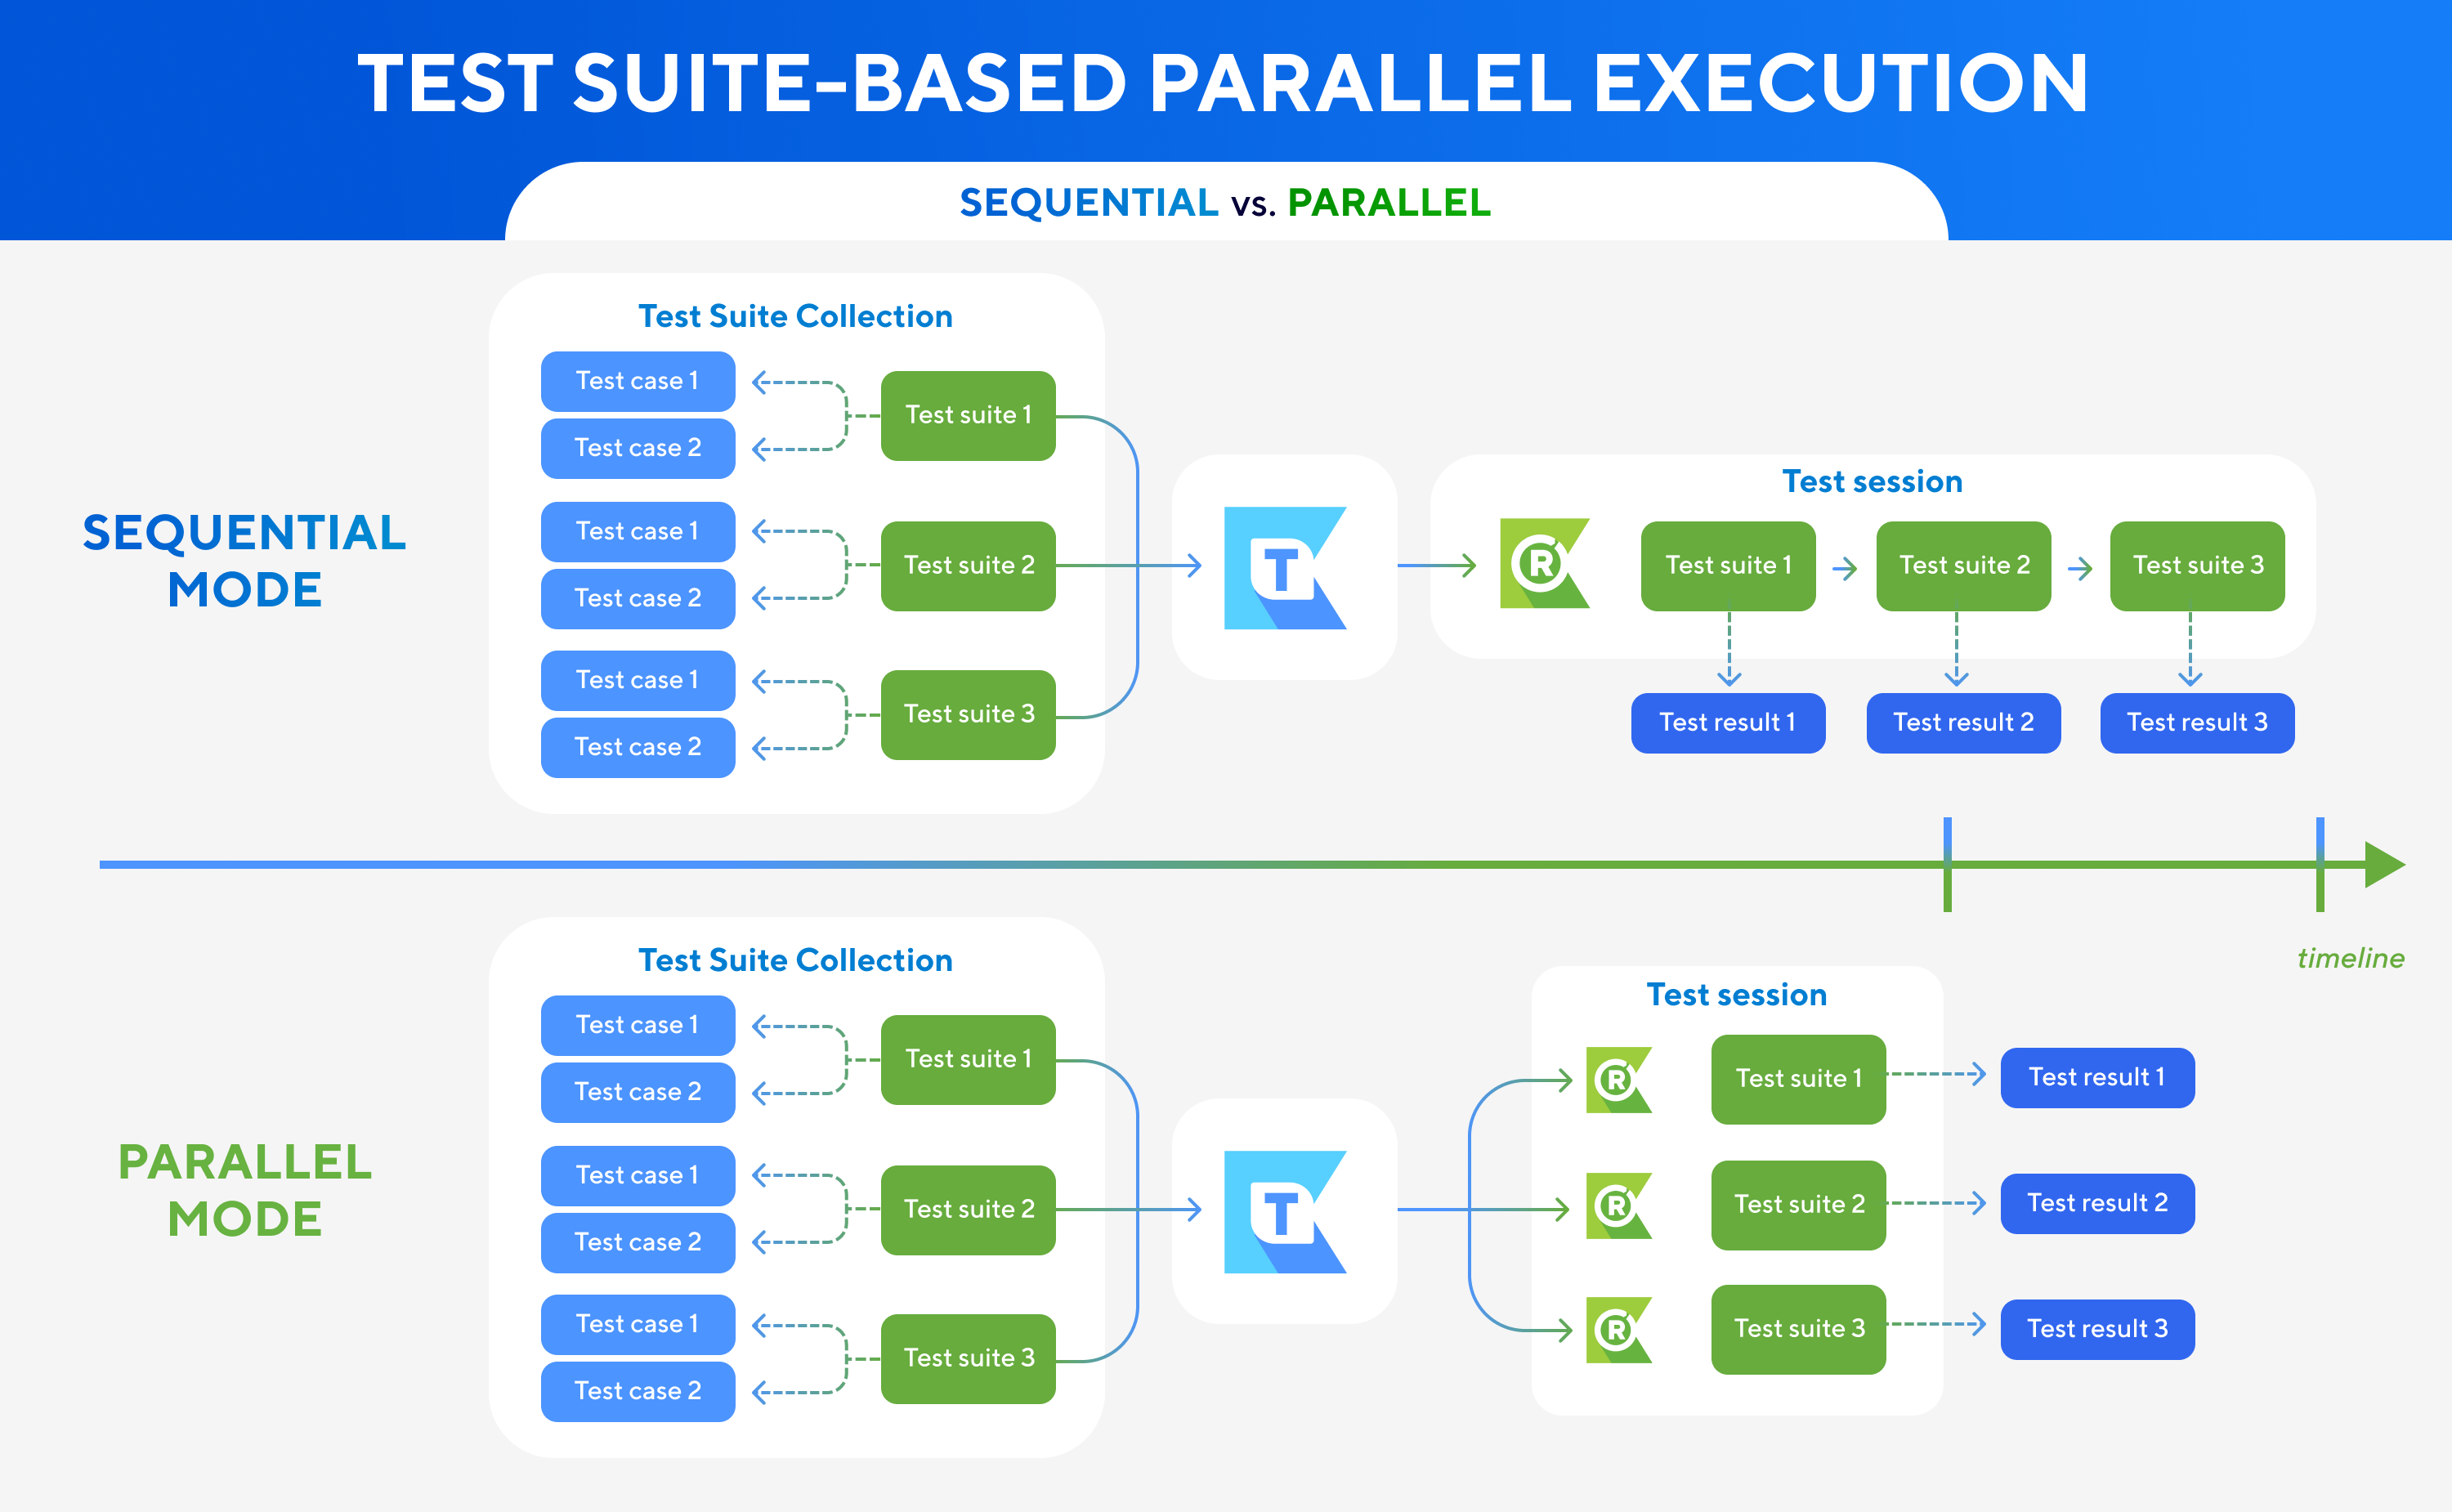 Test Suite-Based Parallel Execution